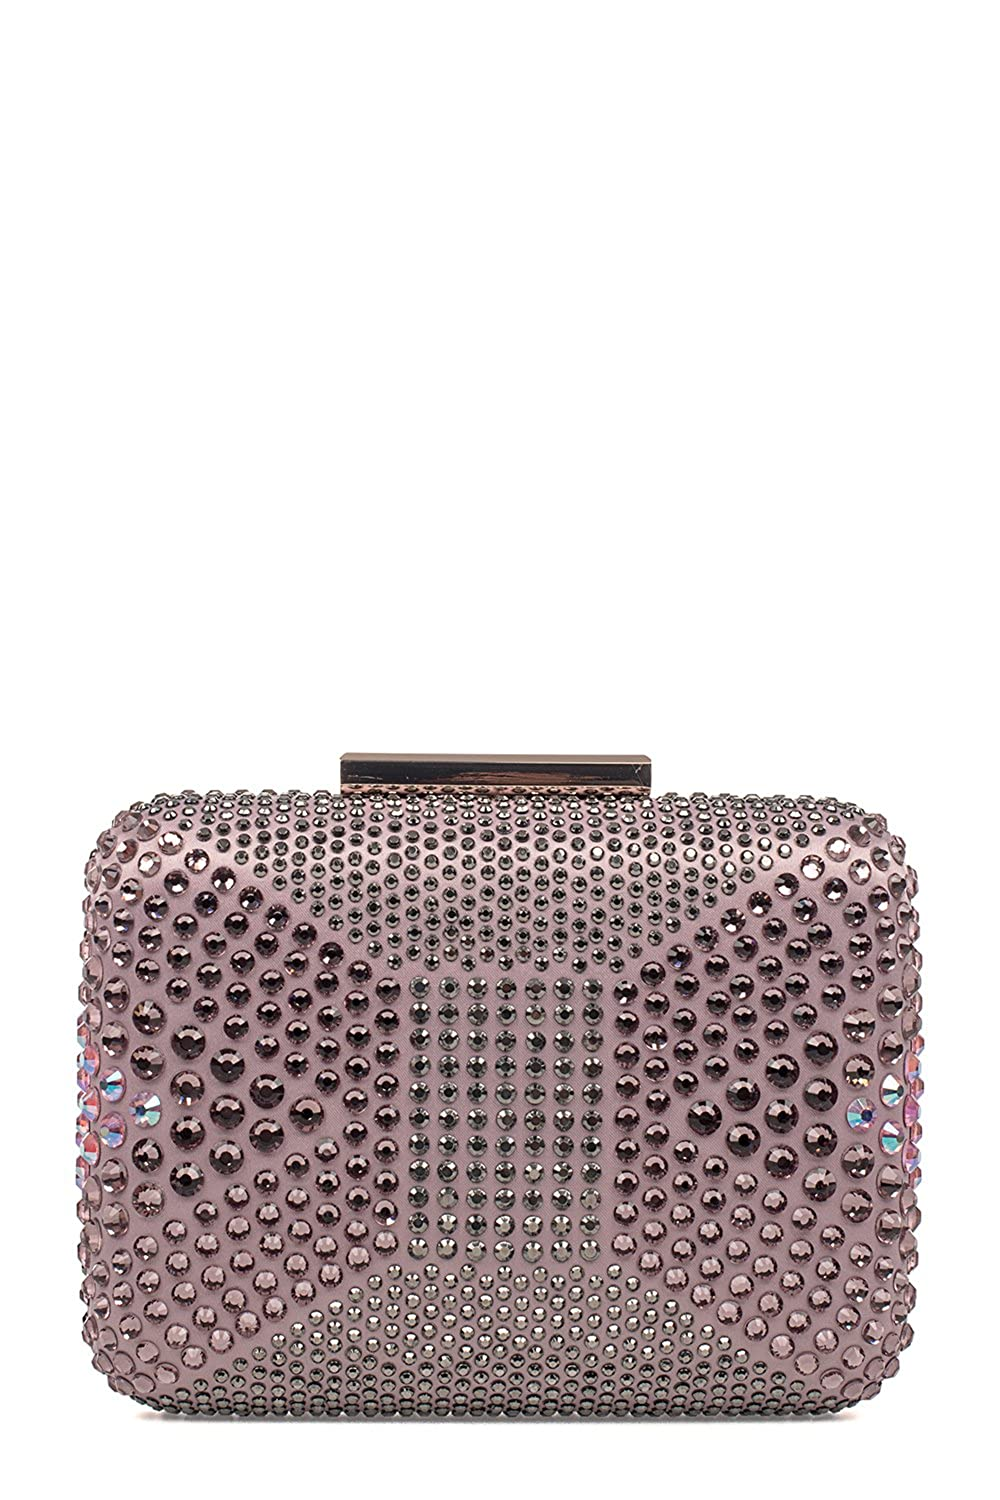 PINKO WOMEN'S 1P20RUY2SSY22 PINK POLYESTER CLUTCH